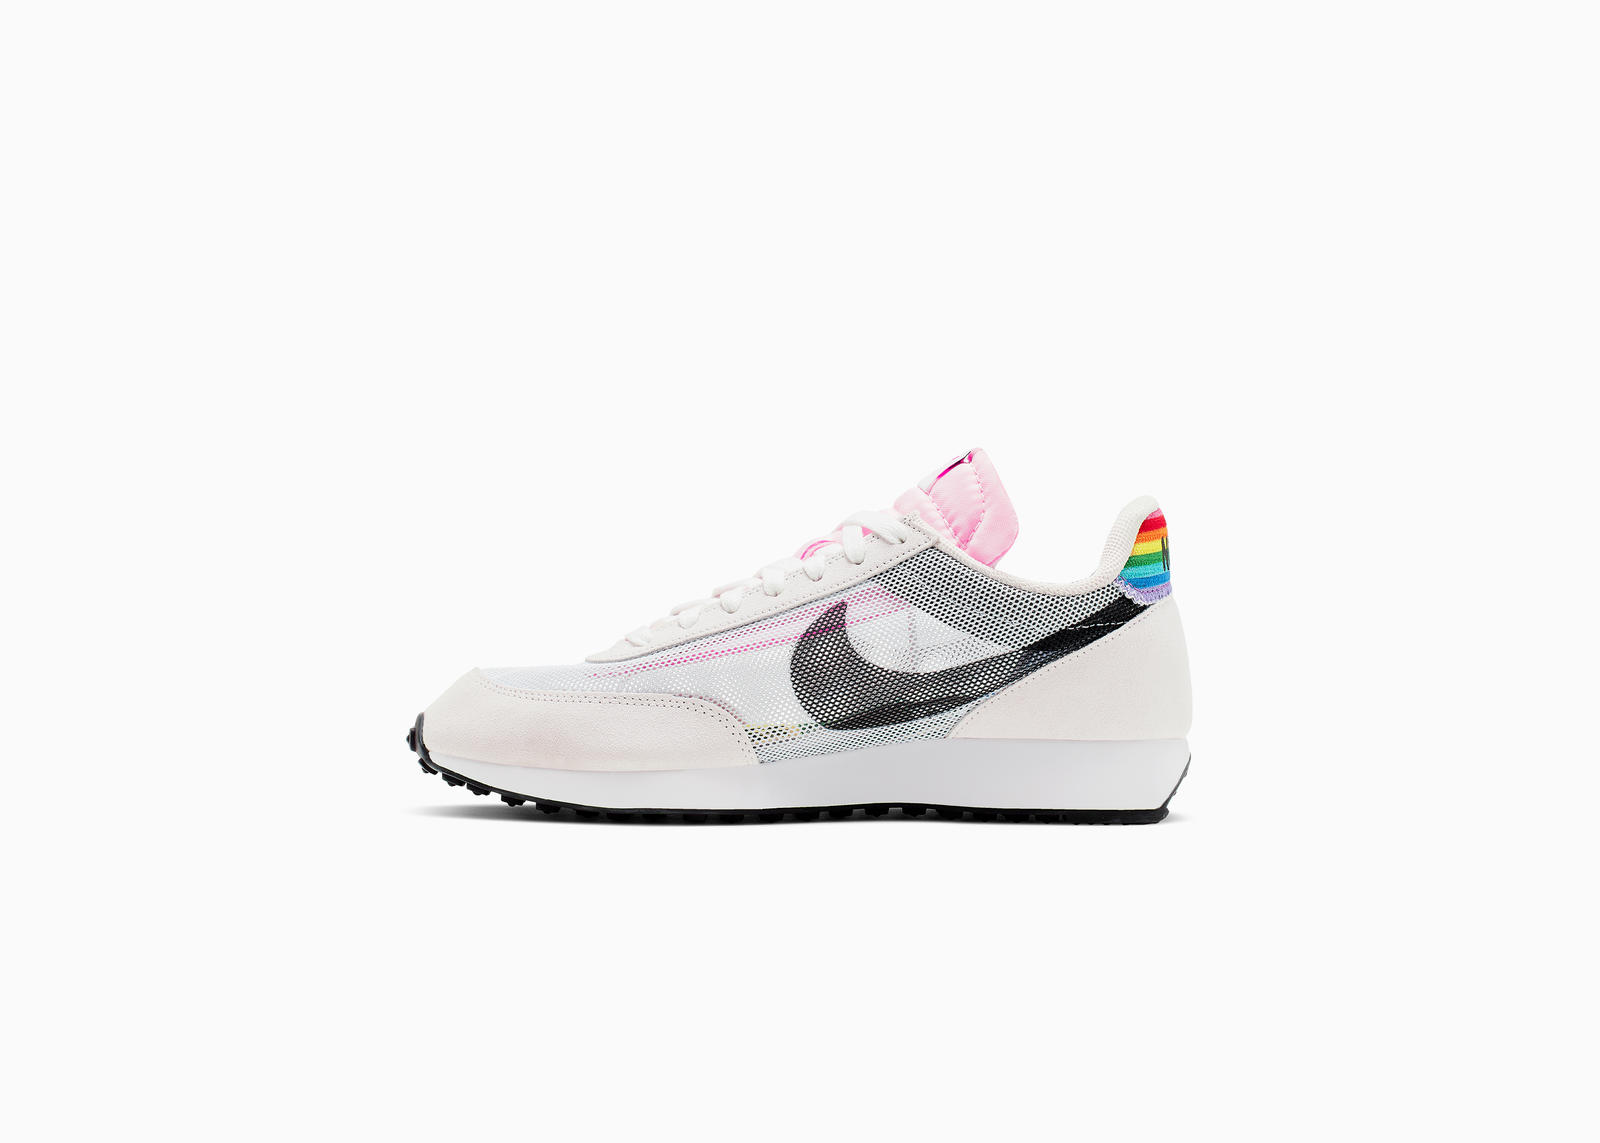 Nike-BETRUE-2019-Collection-1_88099.jpg